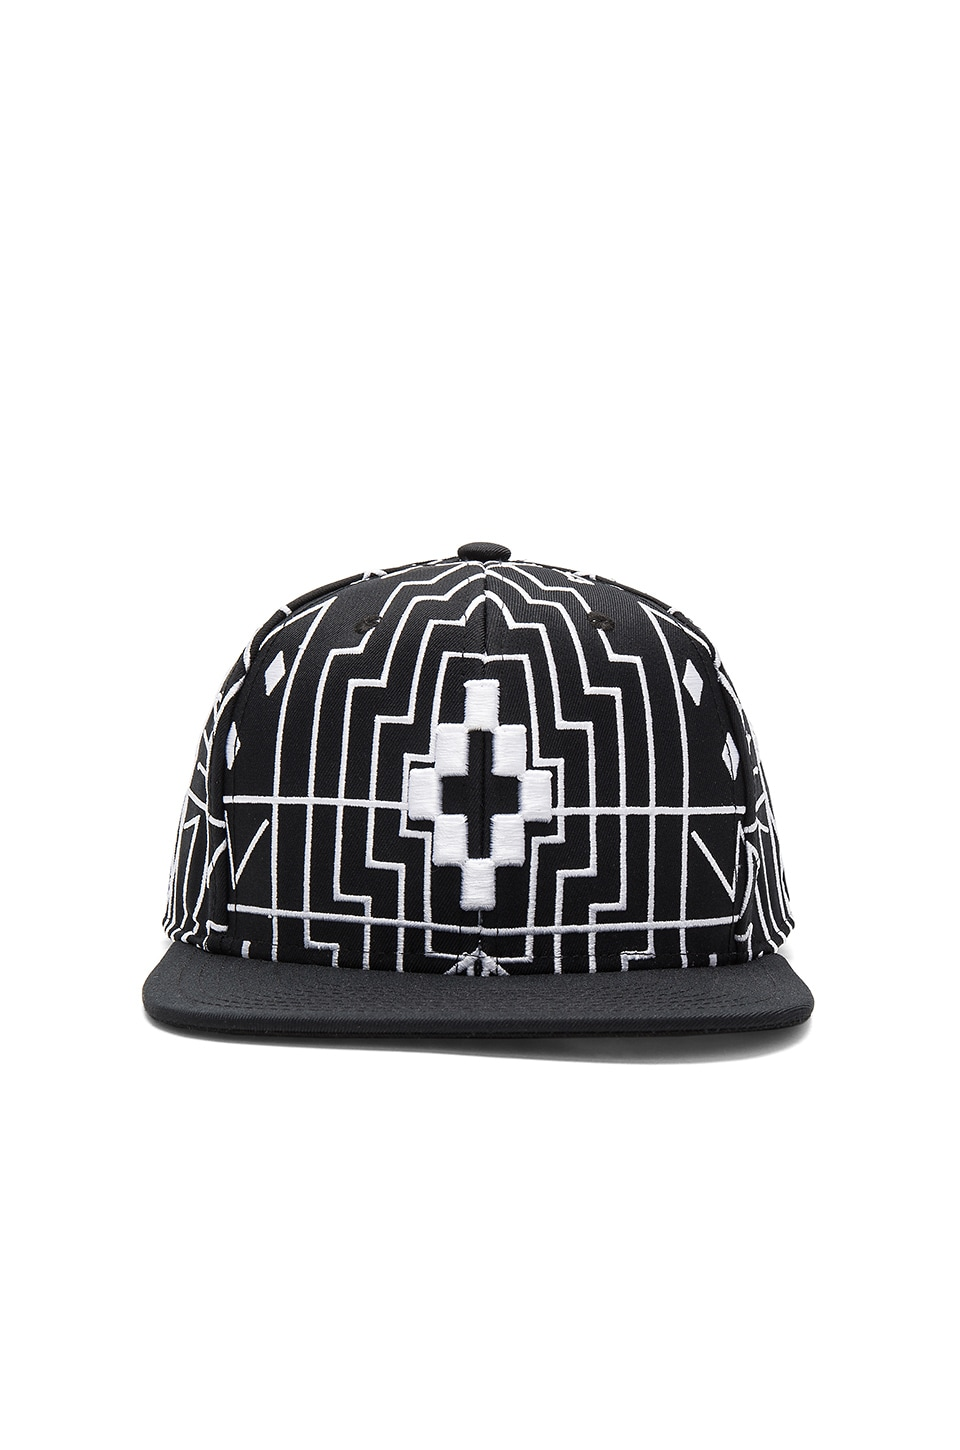 Starter Salomon Cap by Marcelo Burlon